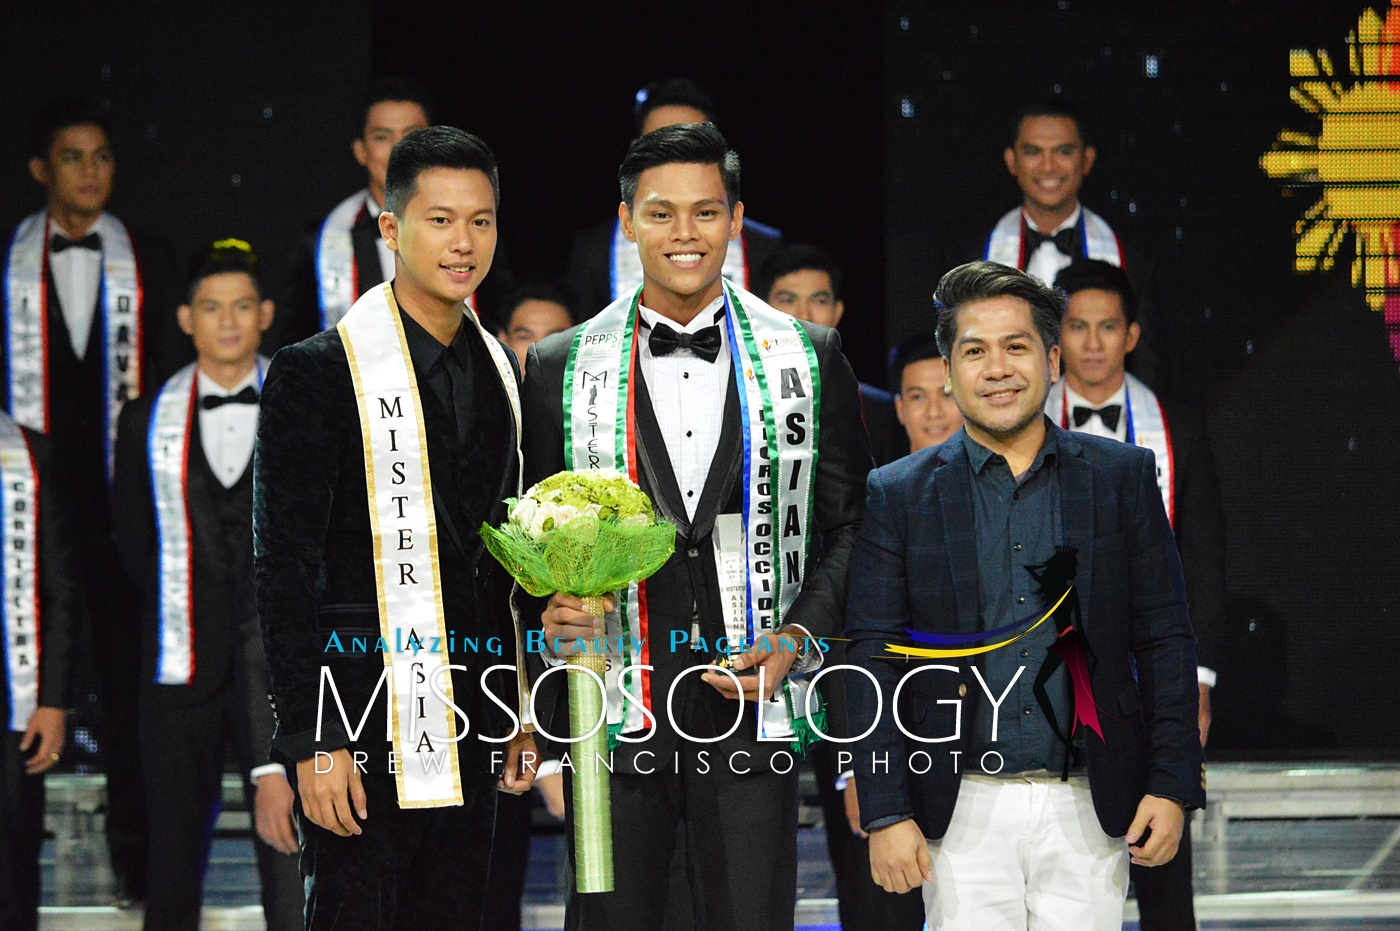 Vincent Issen Christopher Jarina is Mister Asian Philippines 2016